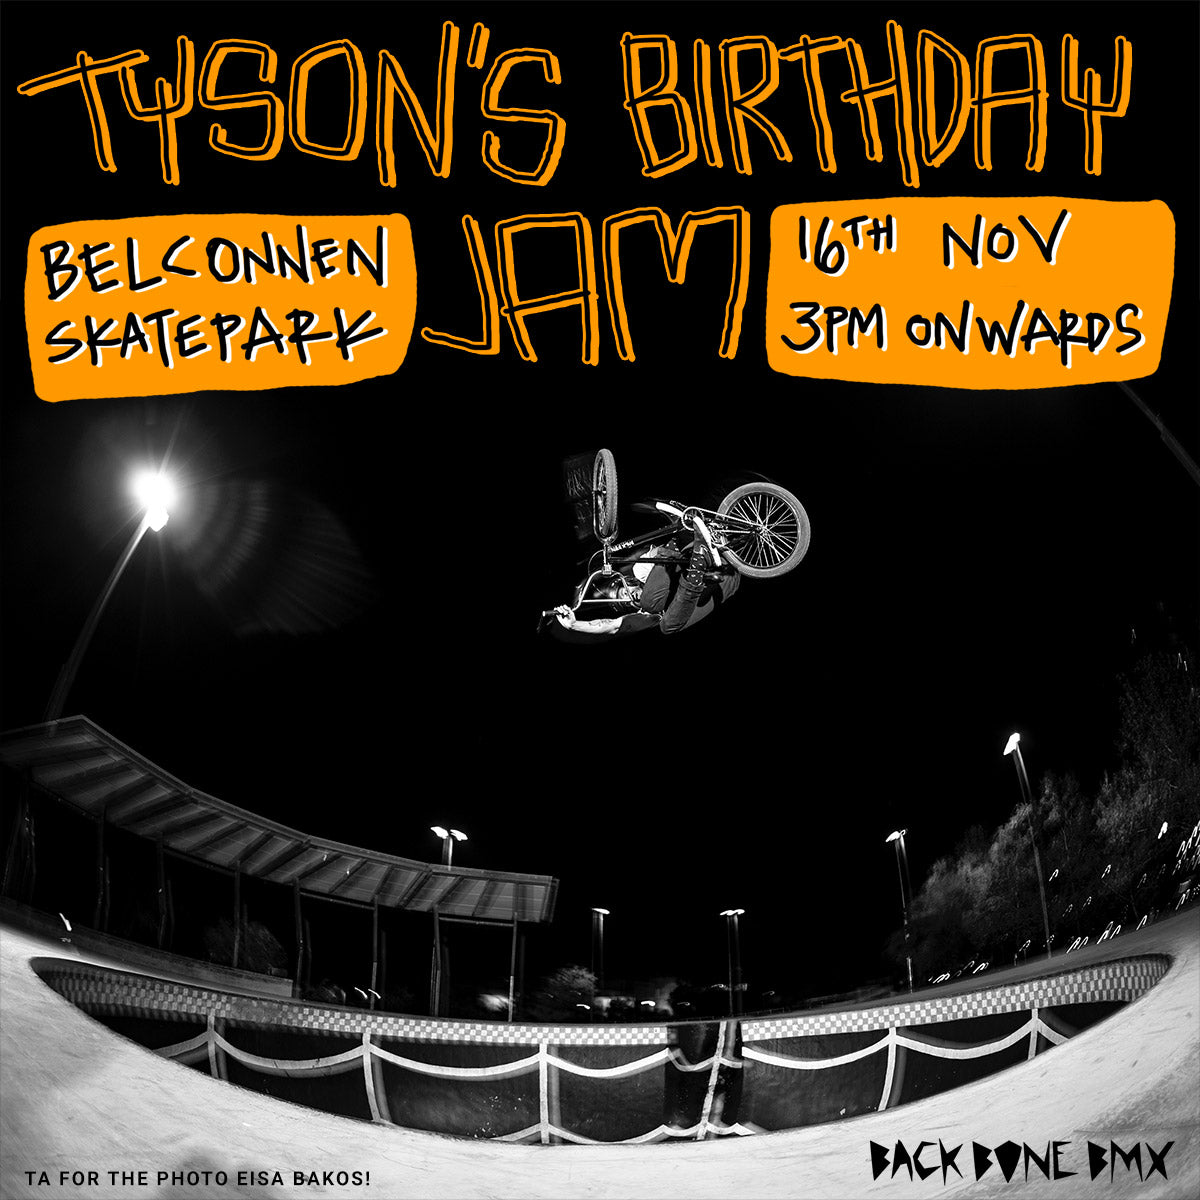 Tyson Belconnen birthday jam flyer